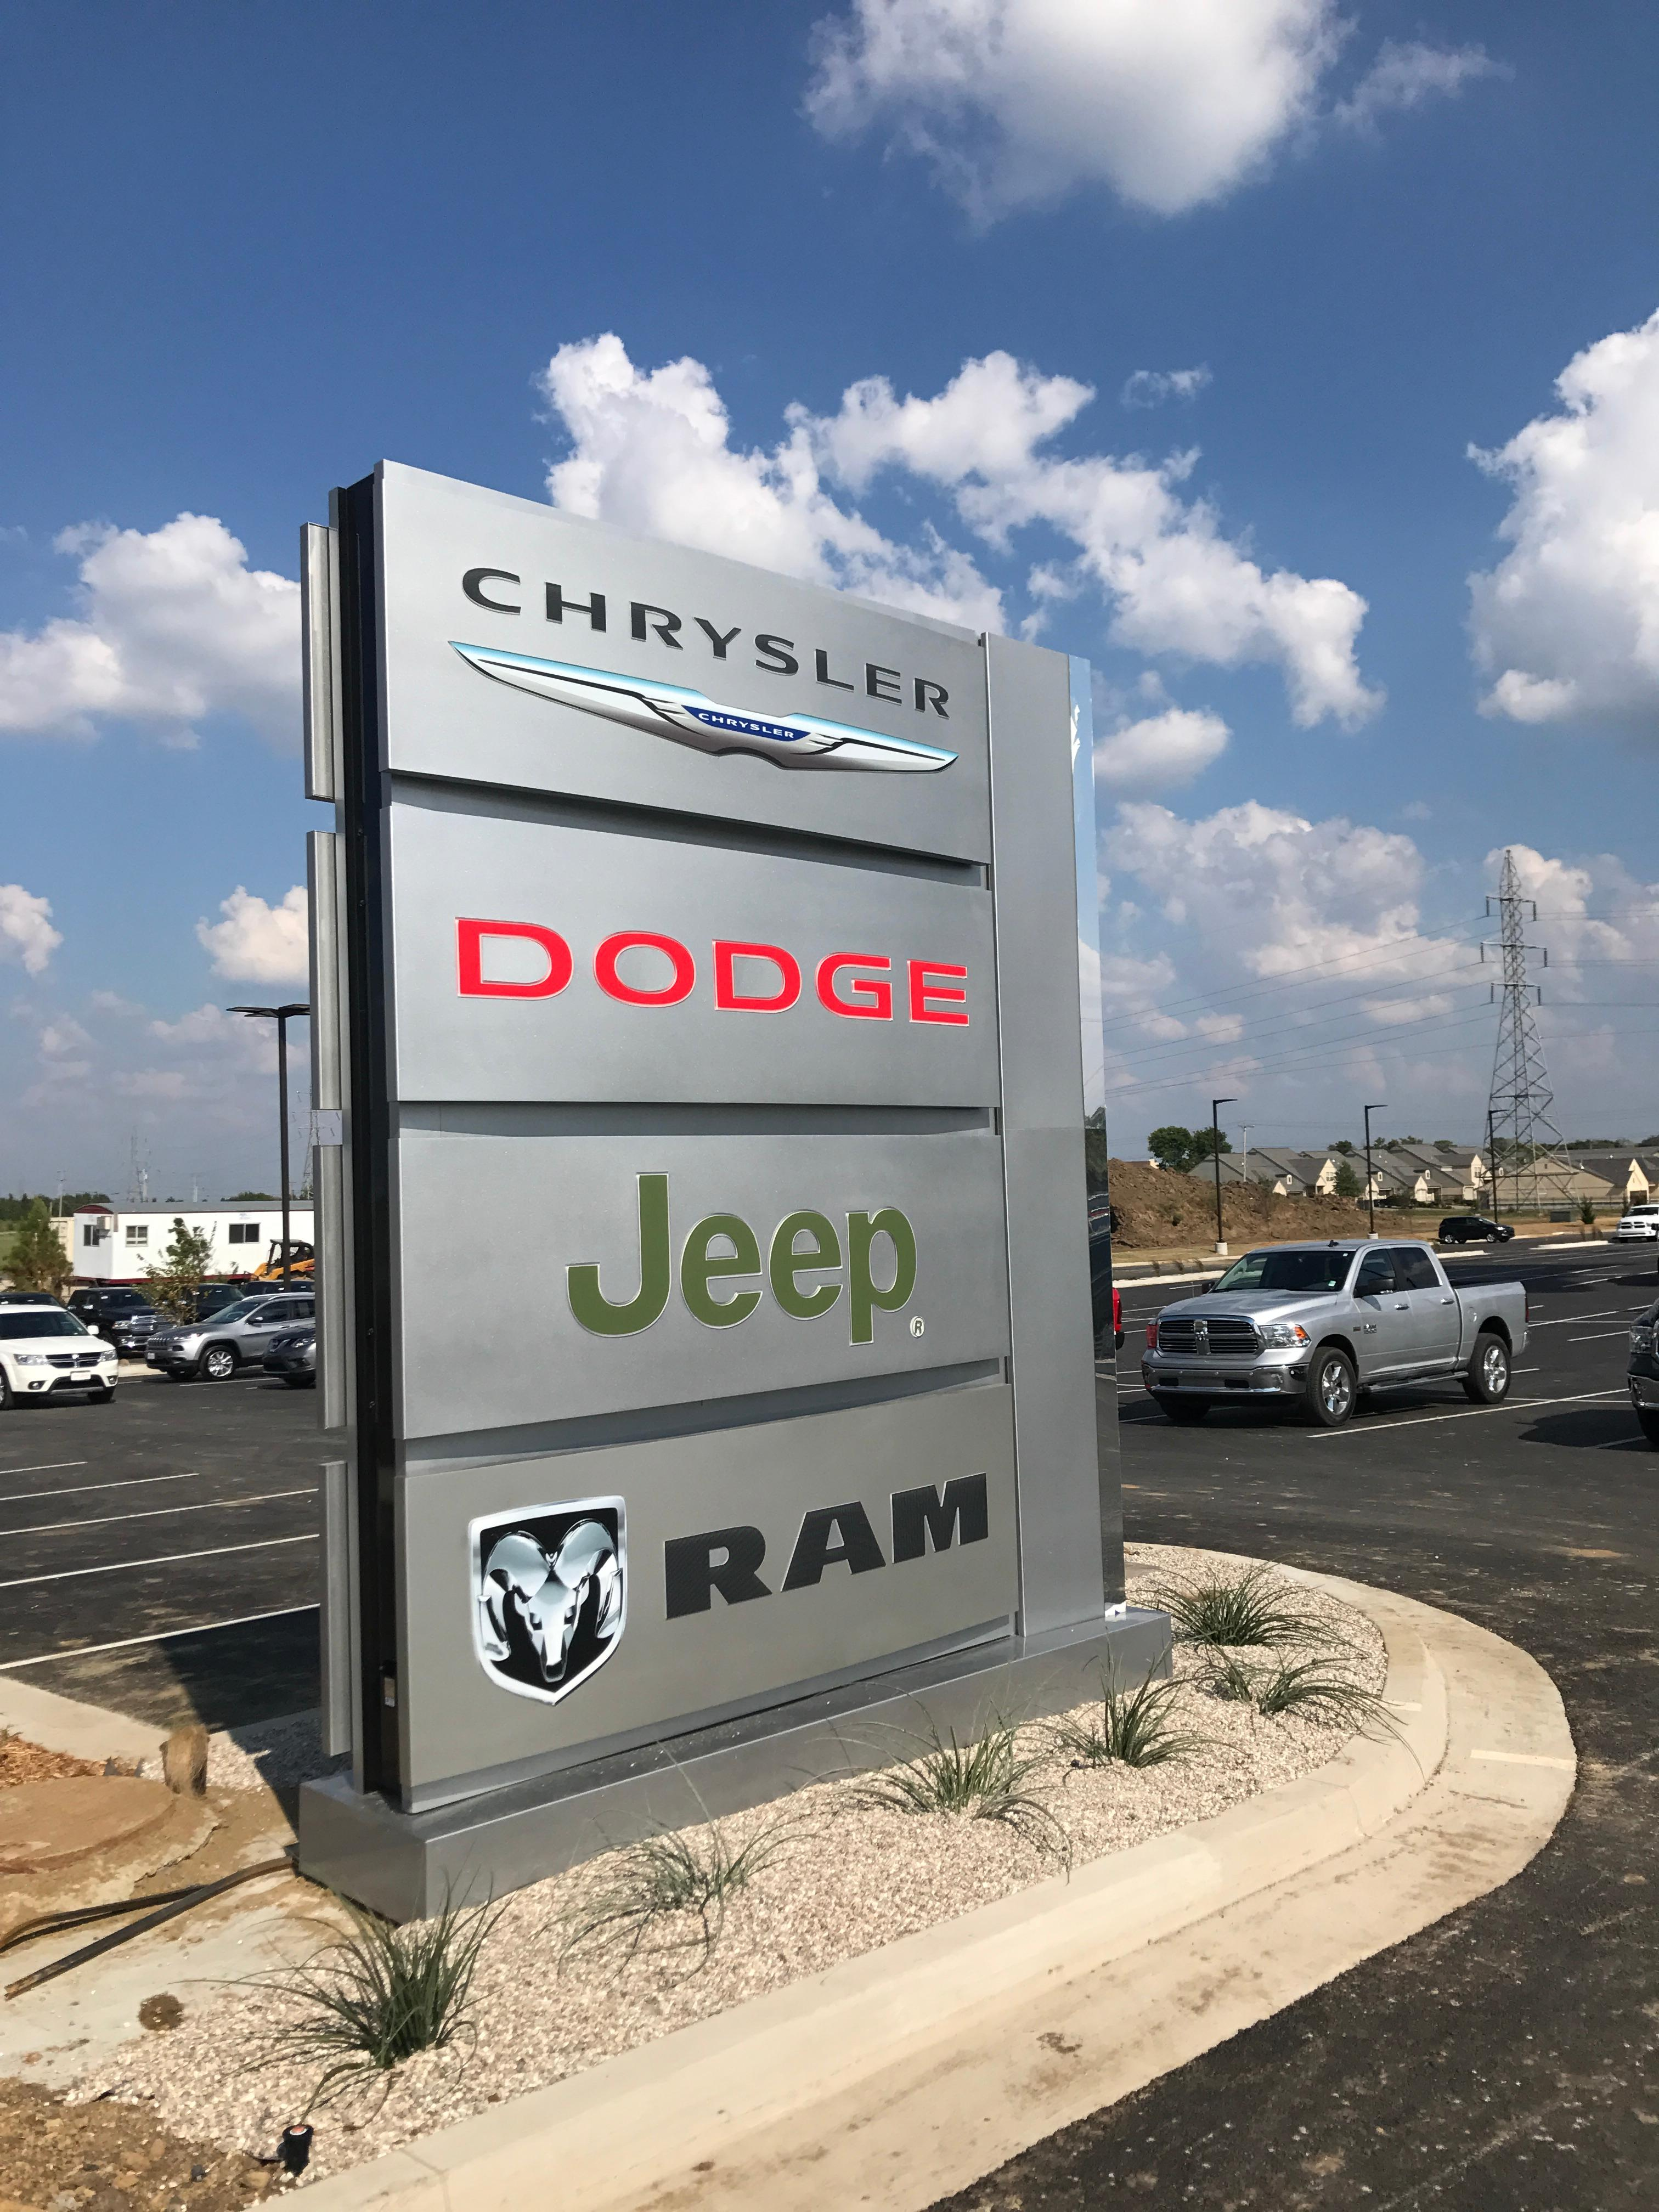 Jim Glover Dodge U003eu003e Jim Glover Dodge Chrysler Jeep Ram Fiat In Owasso, OK